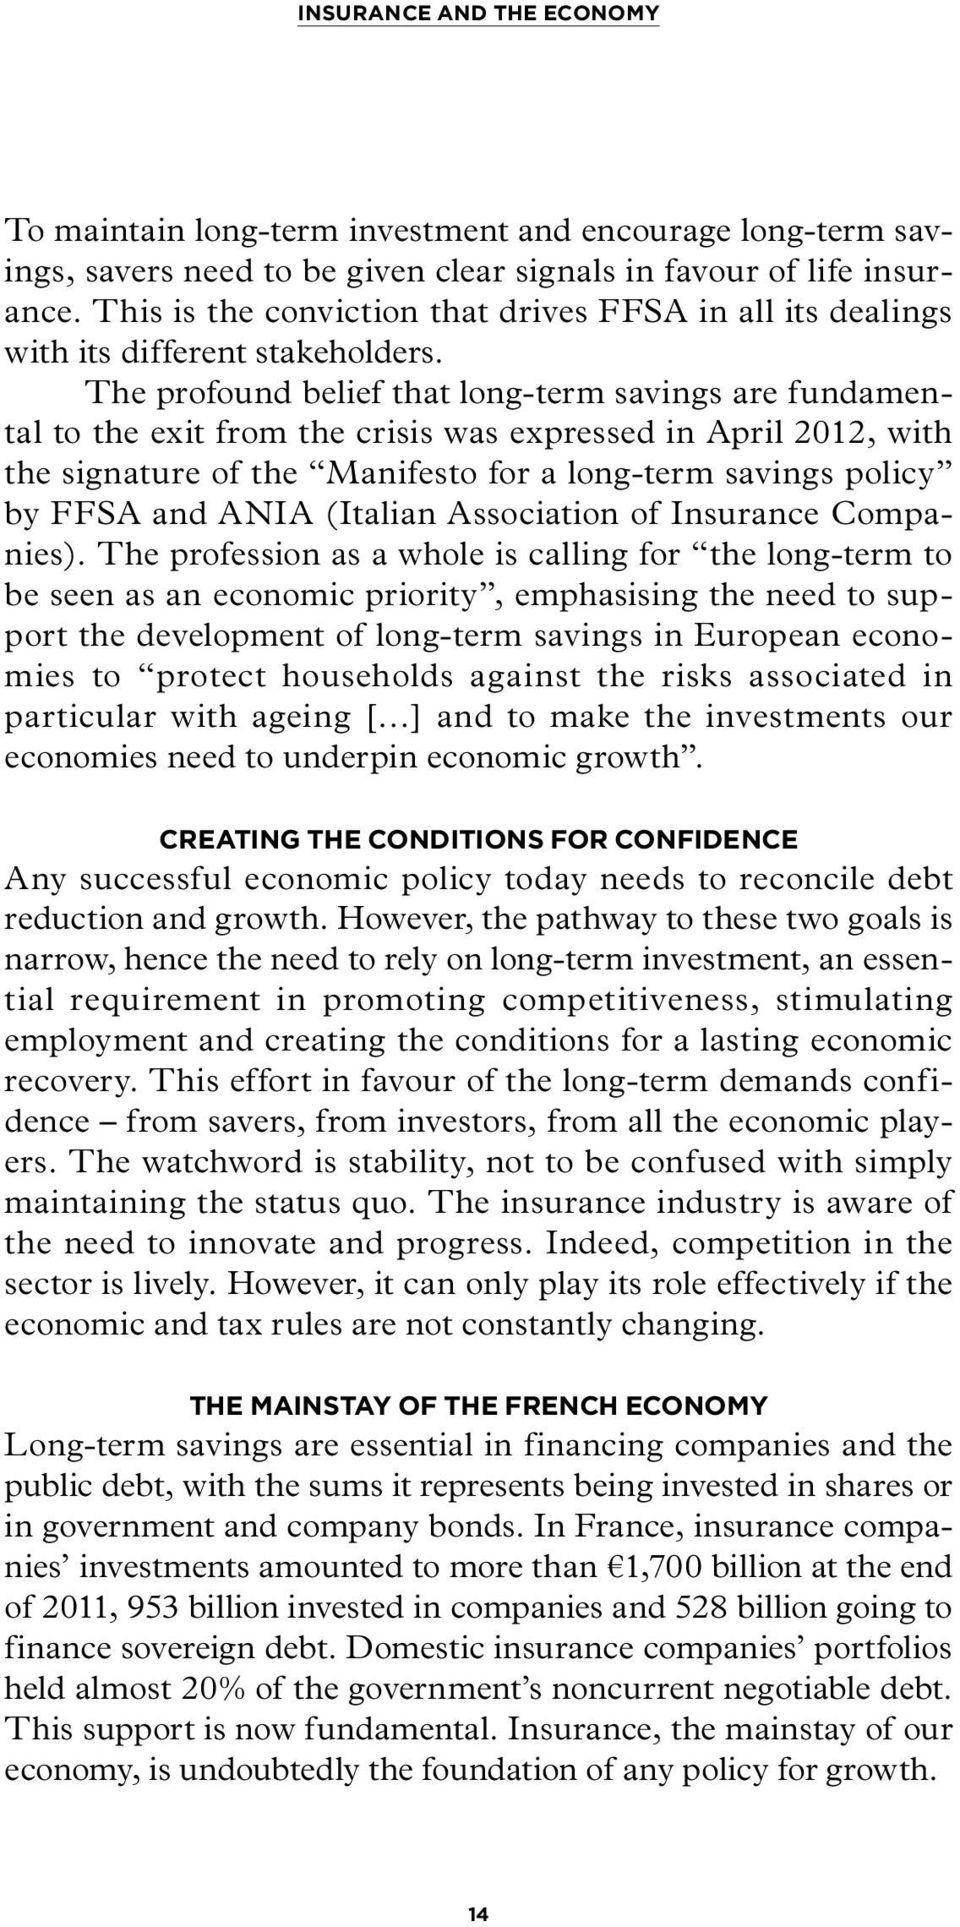 The profound belief that long-term savings are fundamental to the exit from the crisis was expressed in April 2012, with the signature of the Manifesto for a long-term savings policy by FFSA and ANIA